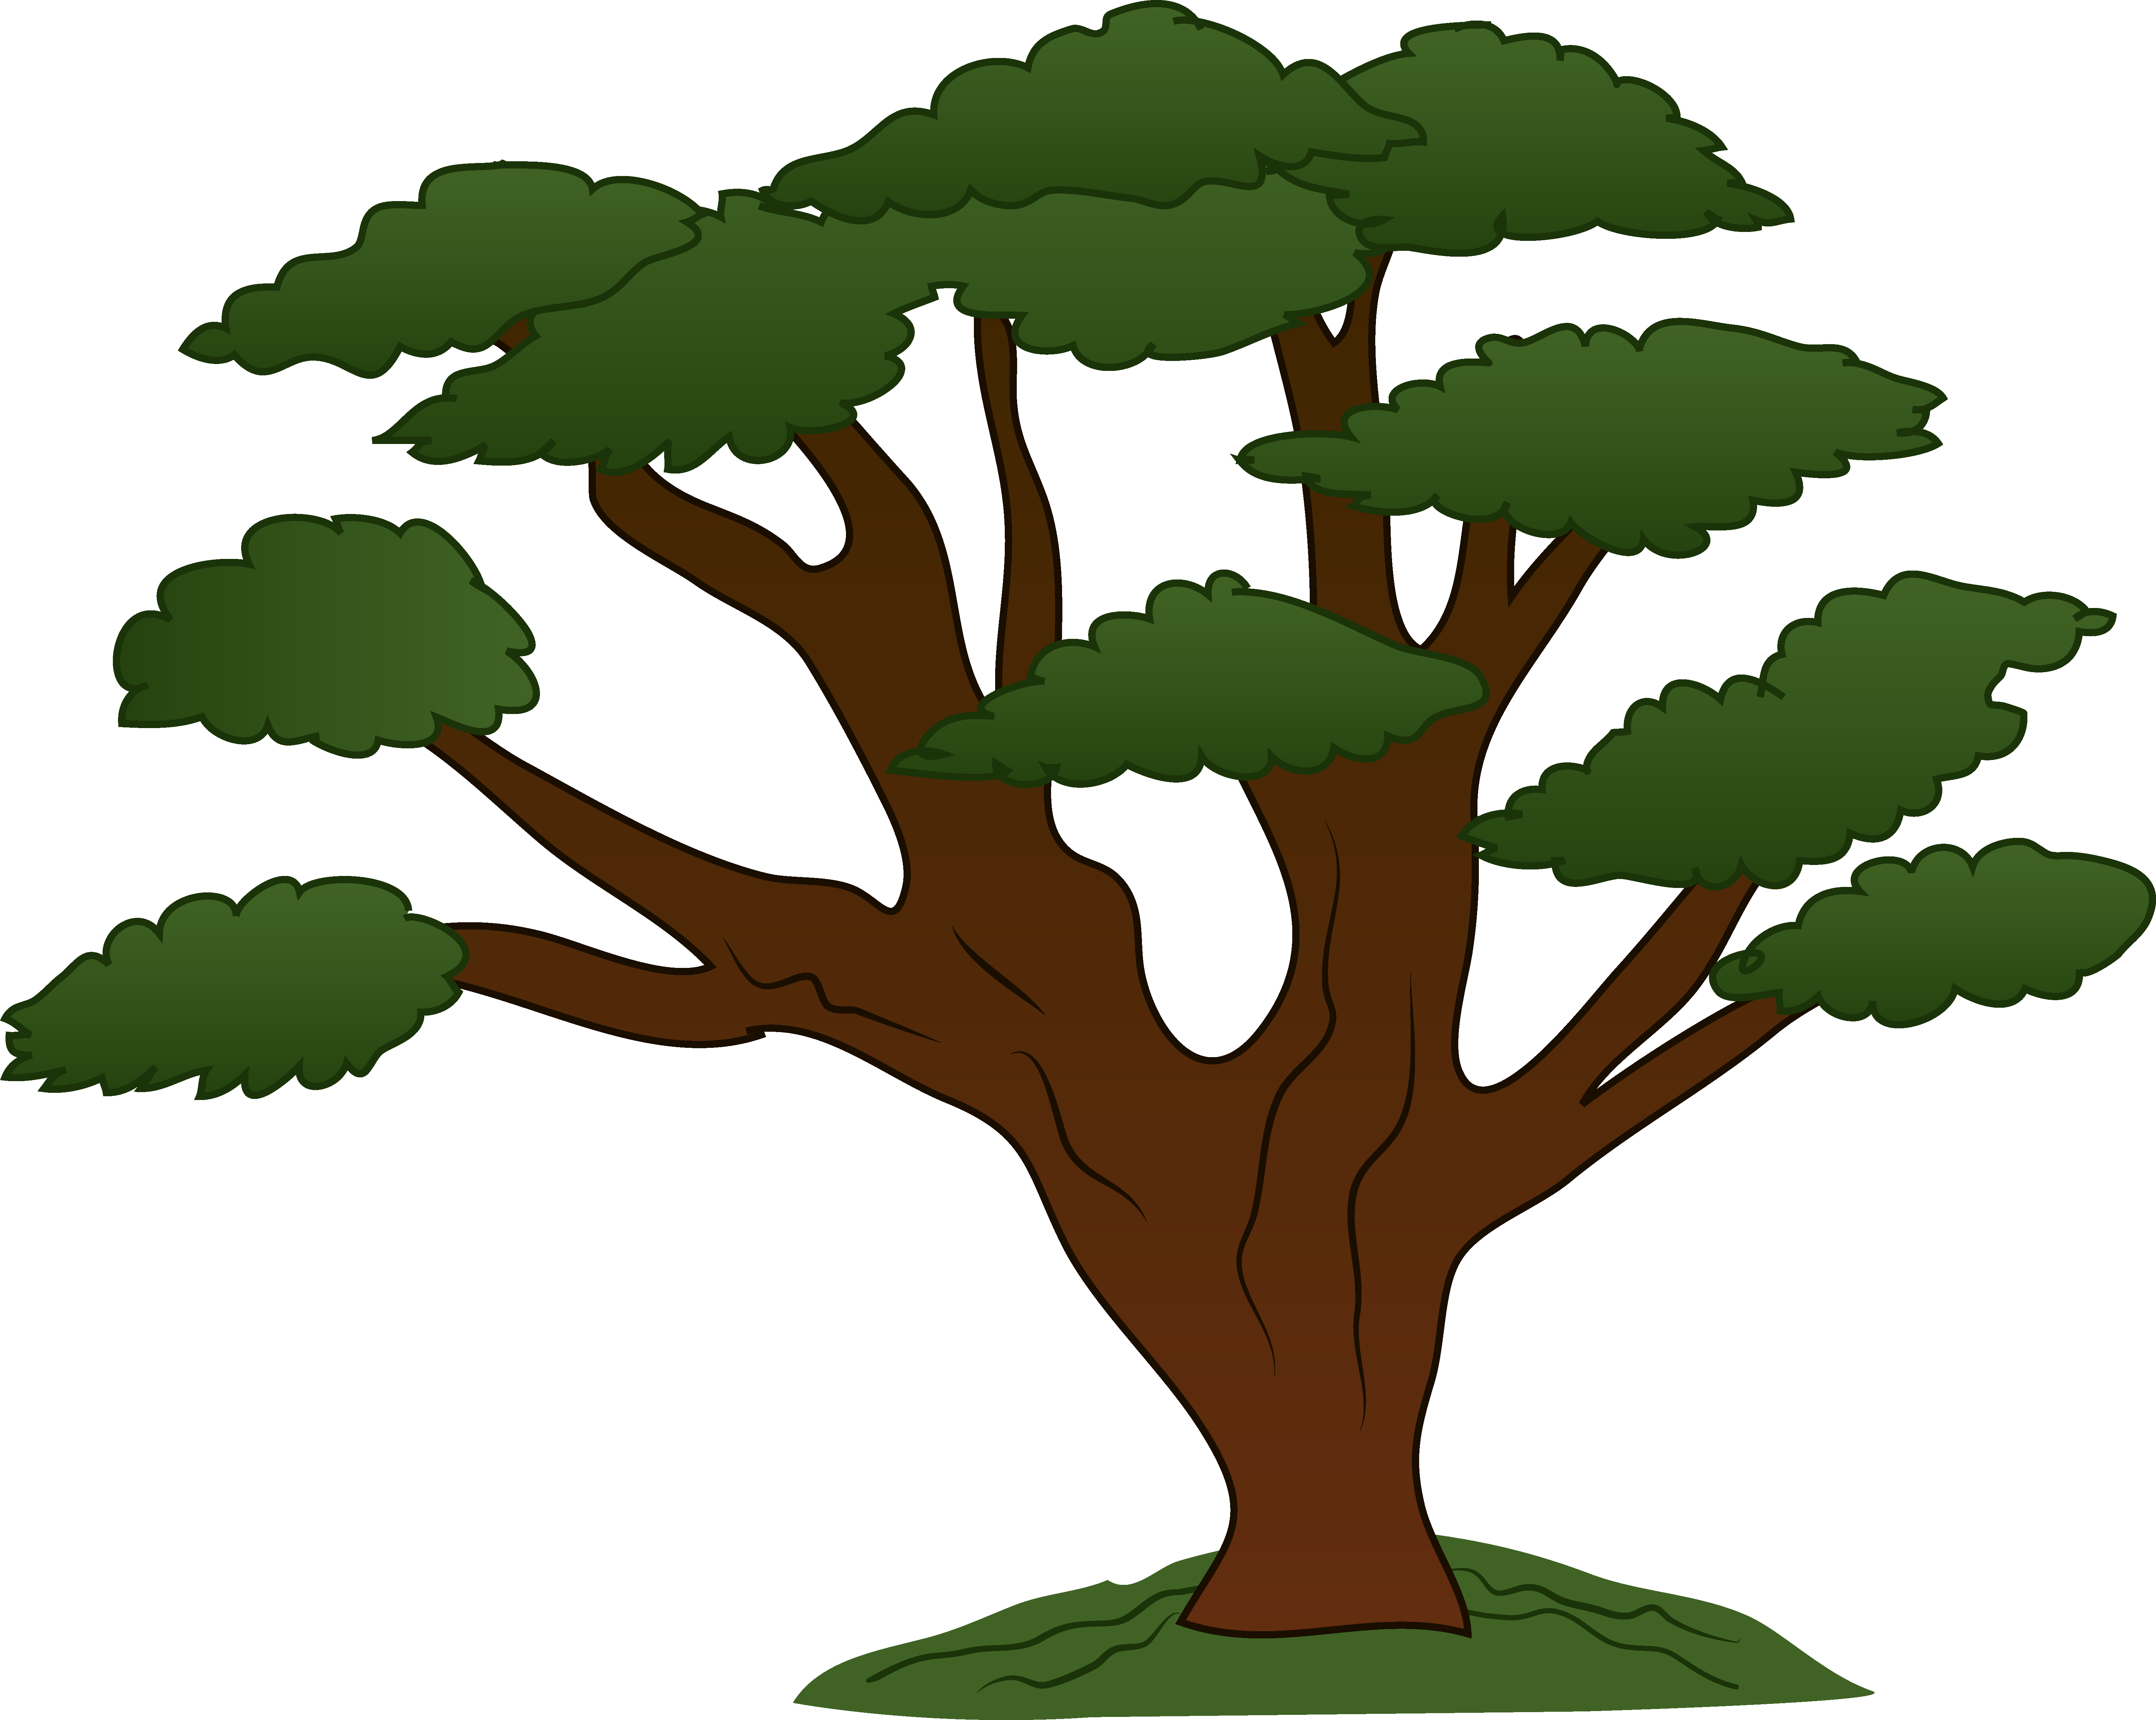 Trees family tree clipart free images 2 2.